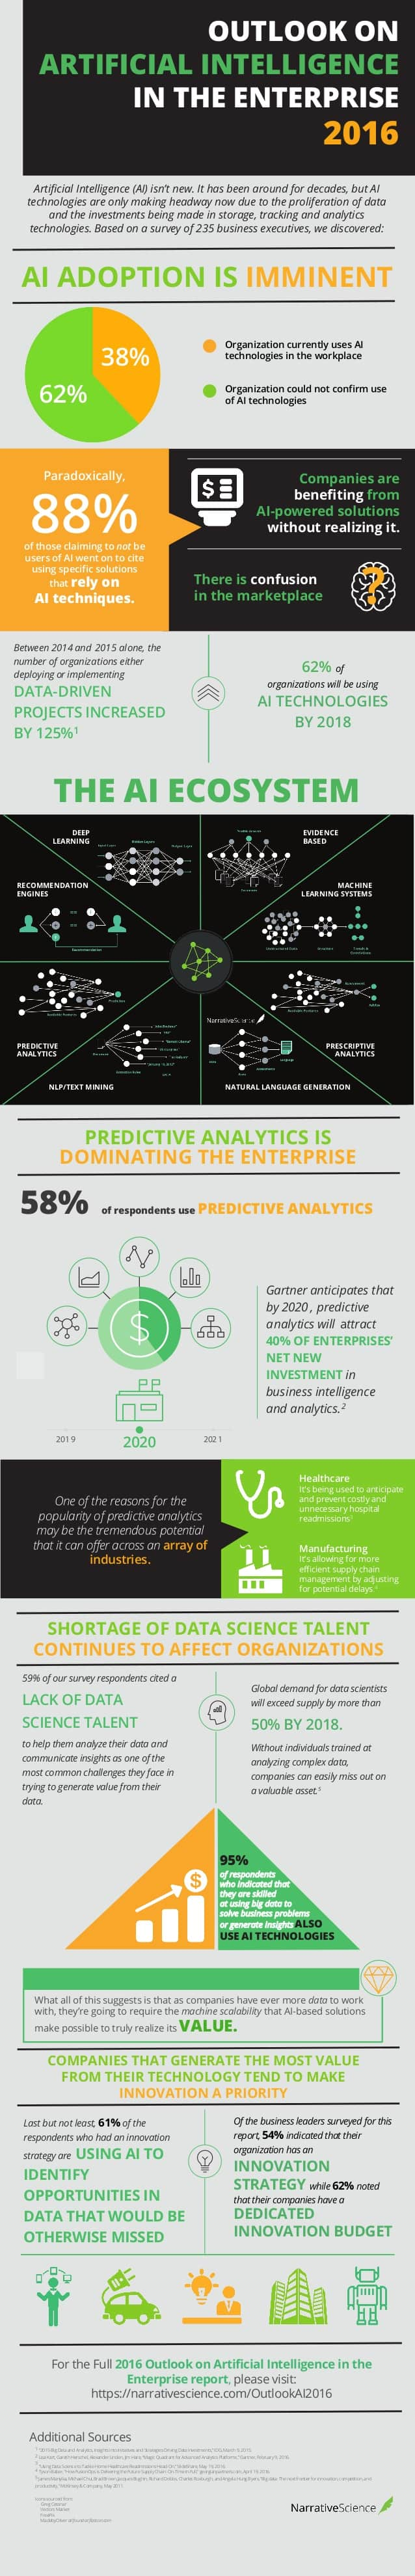 outlook-on-artificial-intelligence-in-the-enterprise-2016-1-638